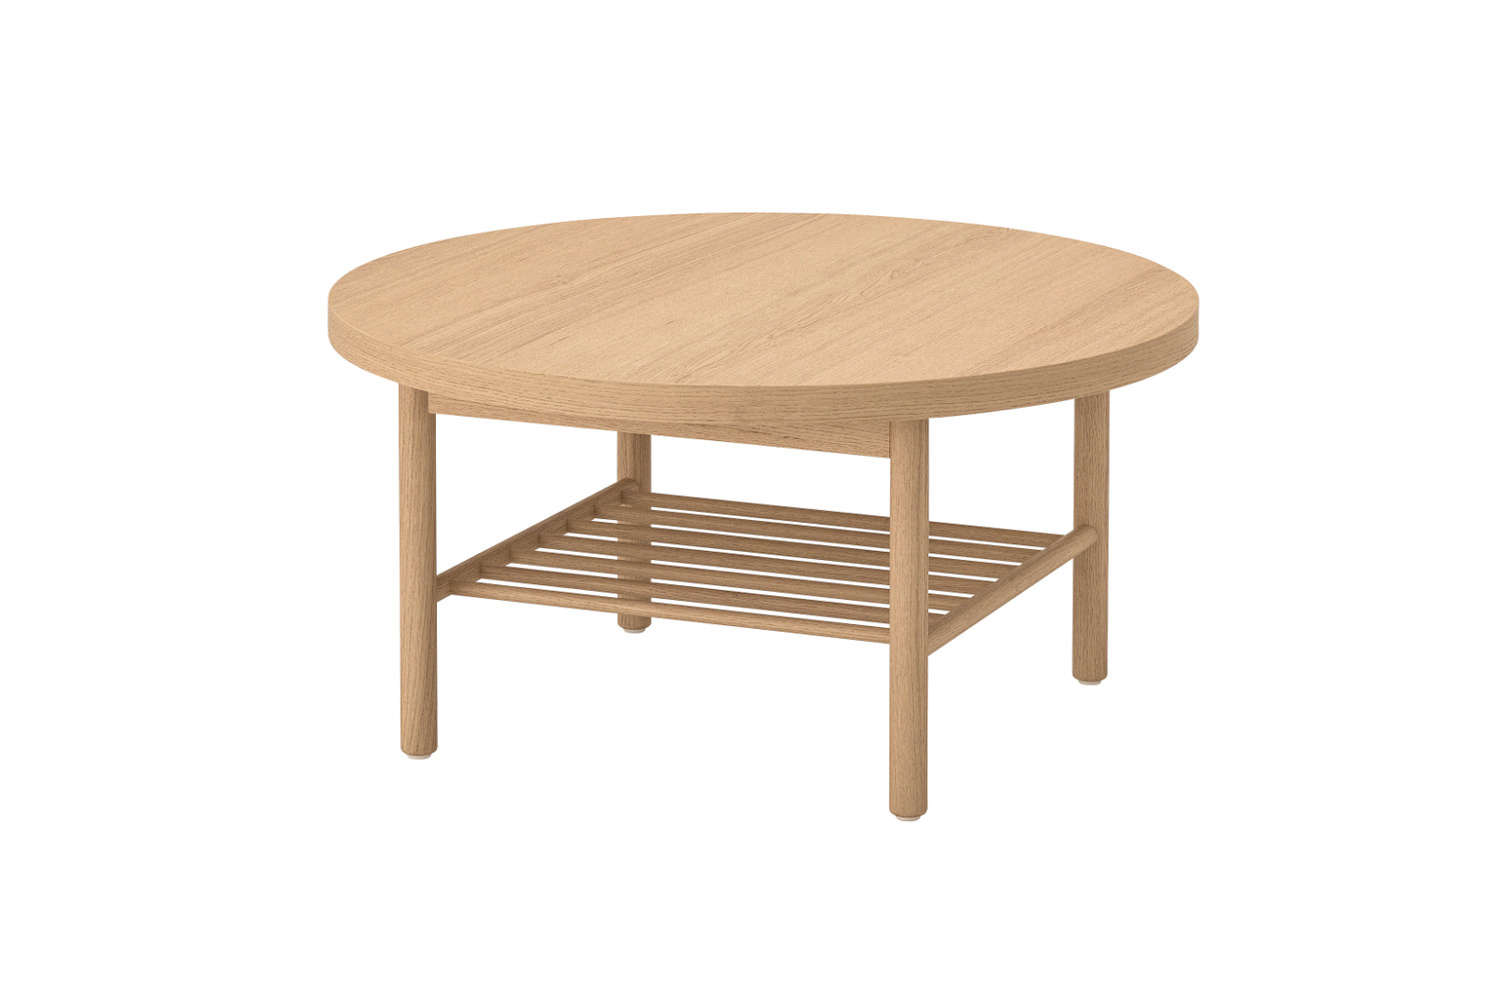 The Listerby Coffee Table in white-stained oak is an affordable $loading=